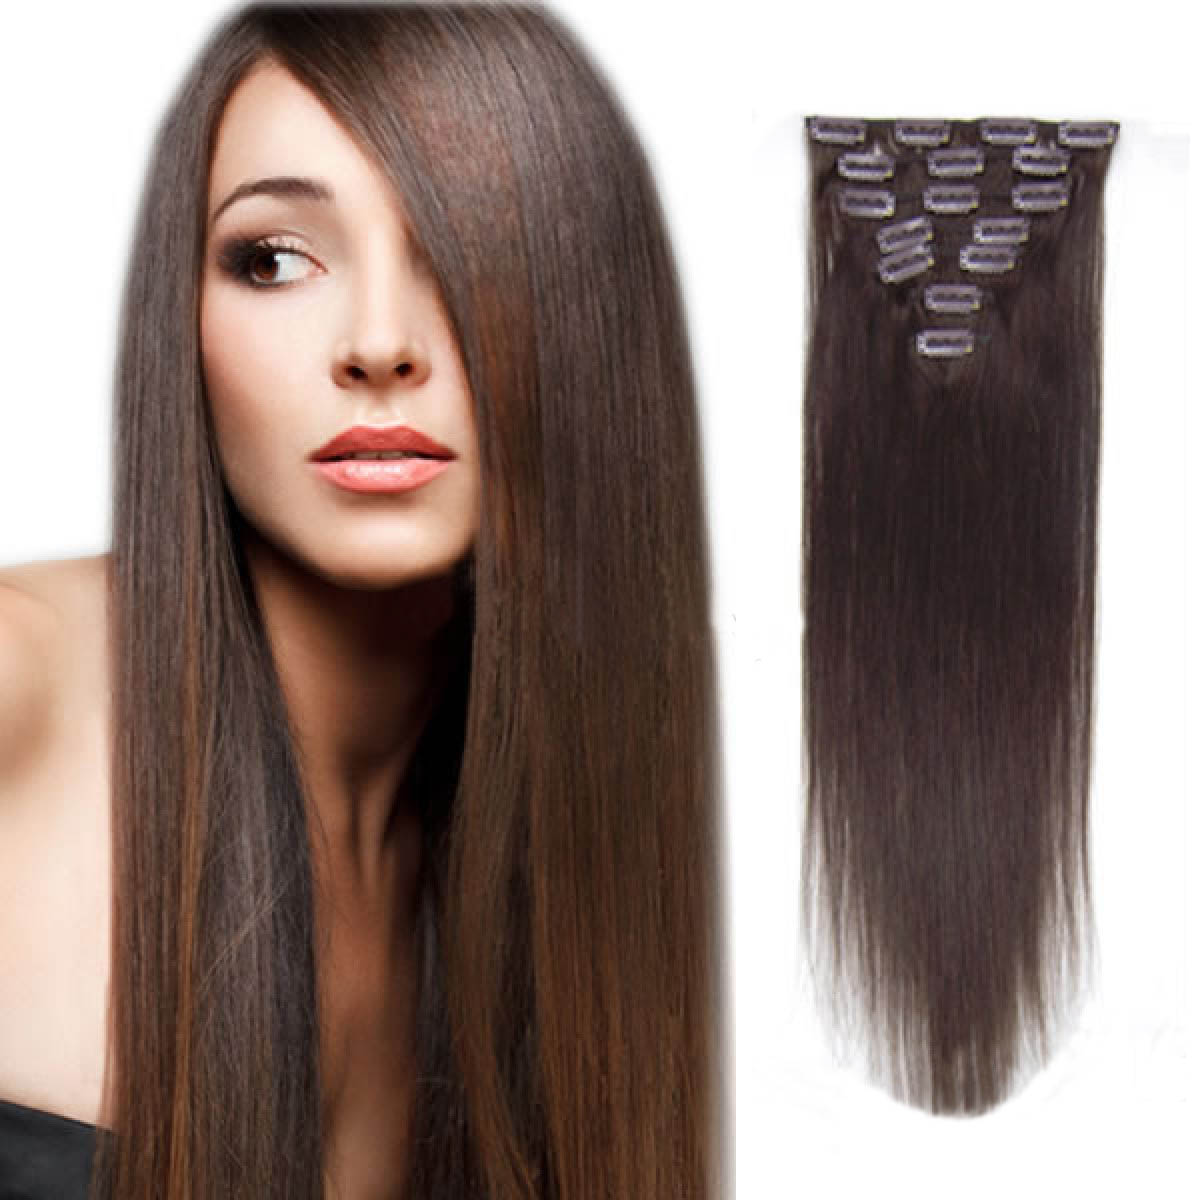 Inch 2 dark brown clip in human hair extensions 7pcs 15 inch 2 dark brown clip in human hair extensions 7pcs pmusecretfo Image collections